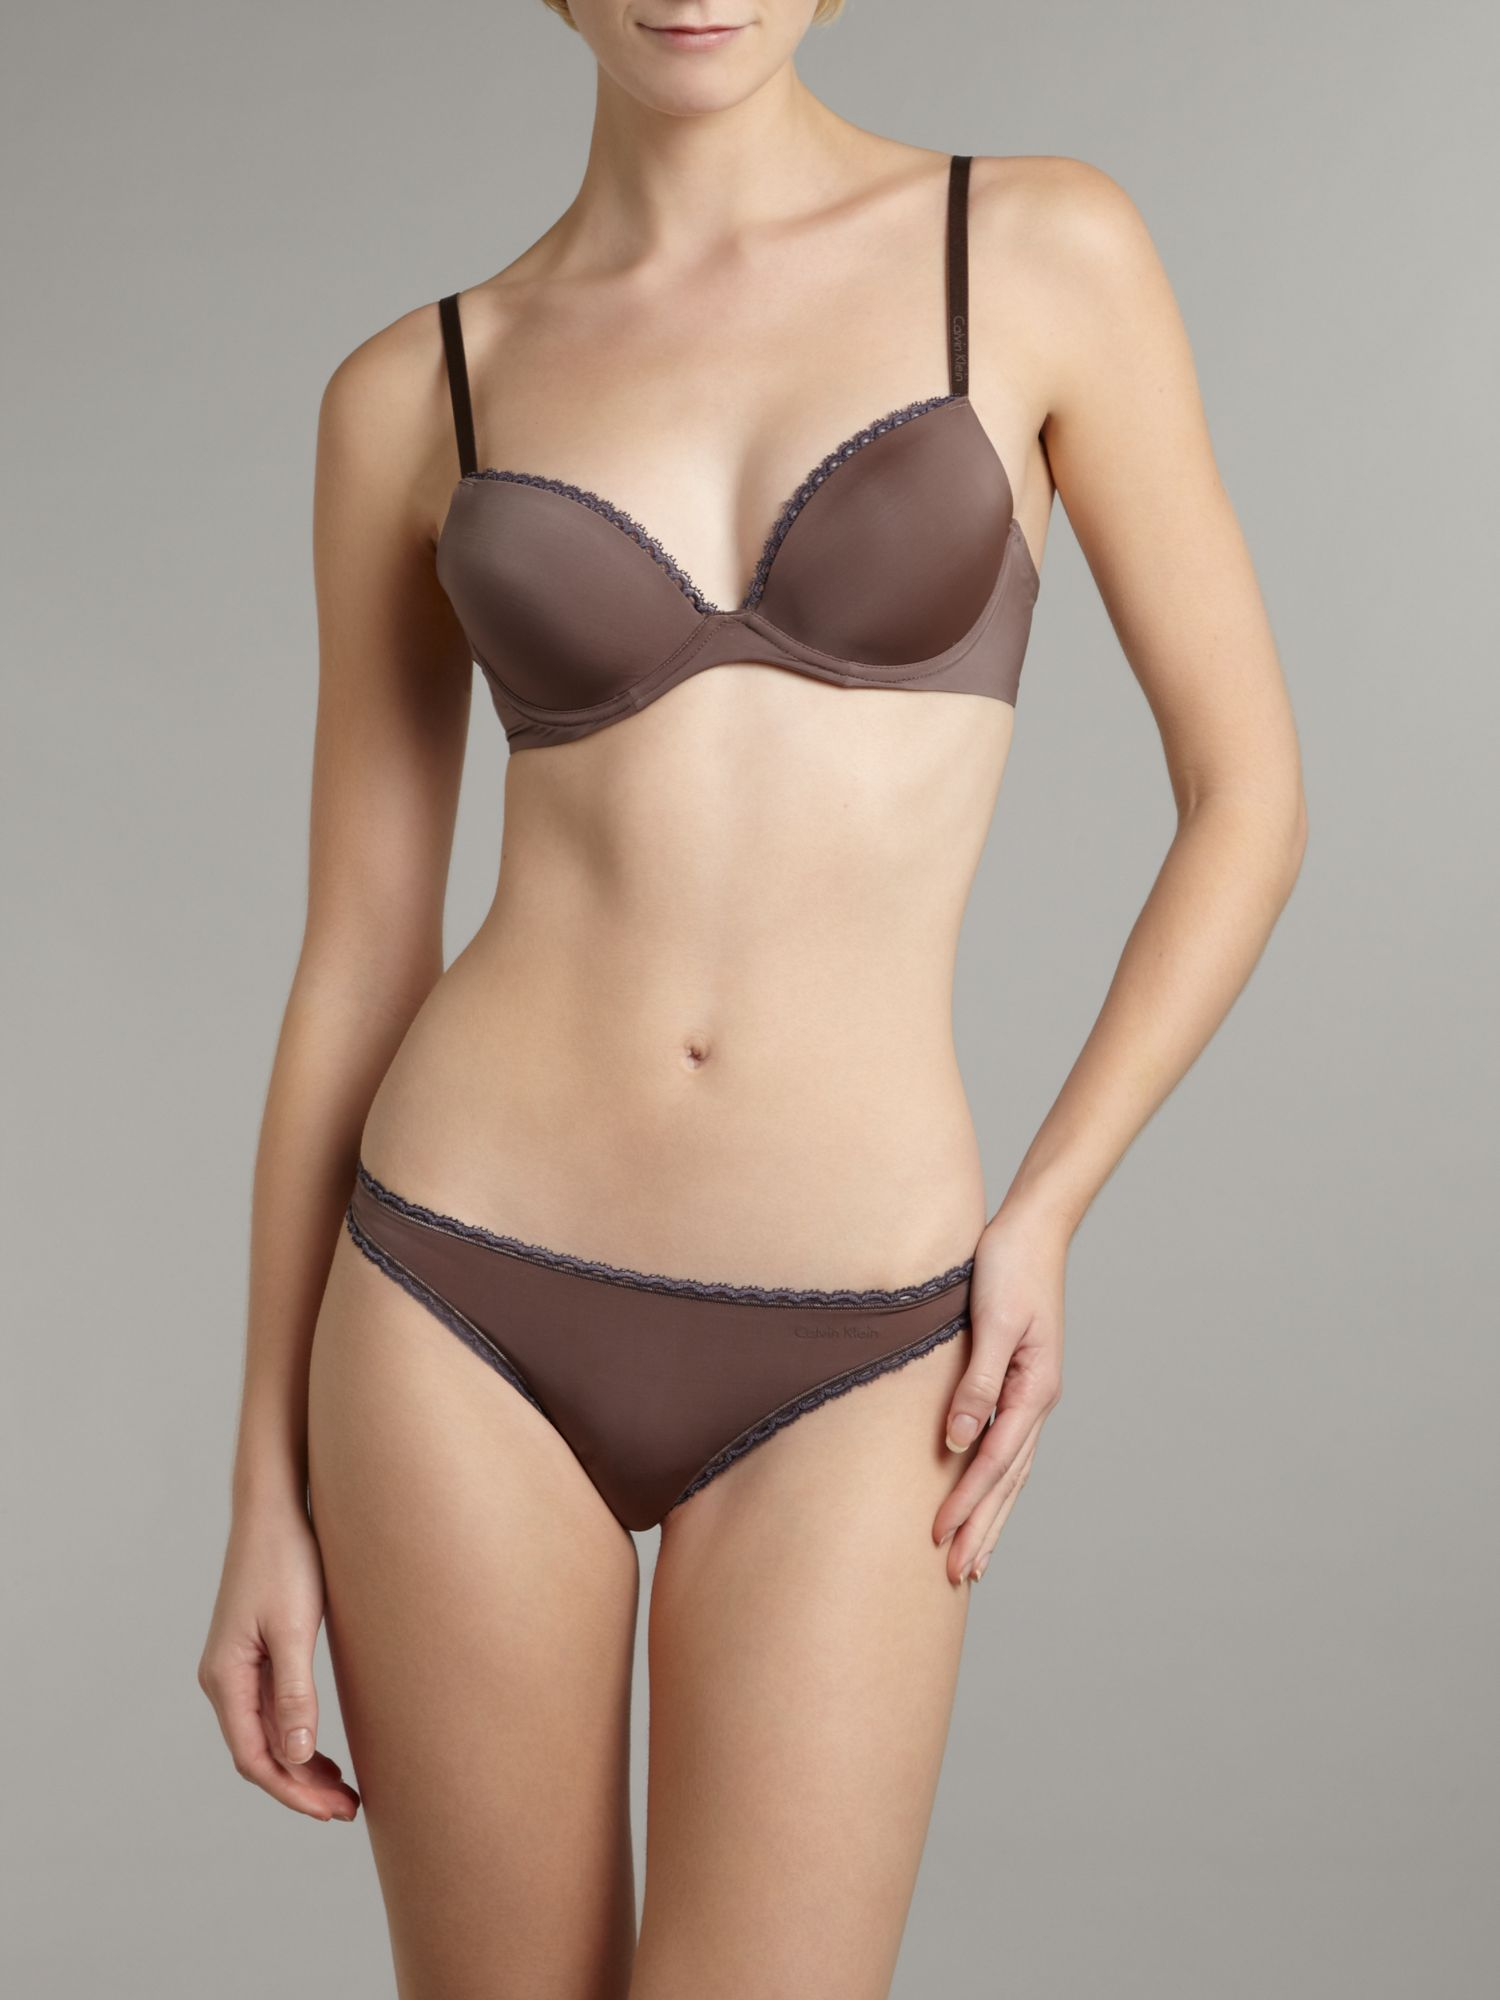 Seductive comfort lingerie collection